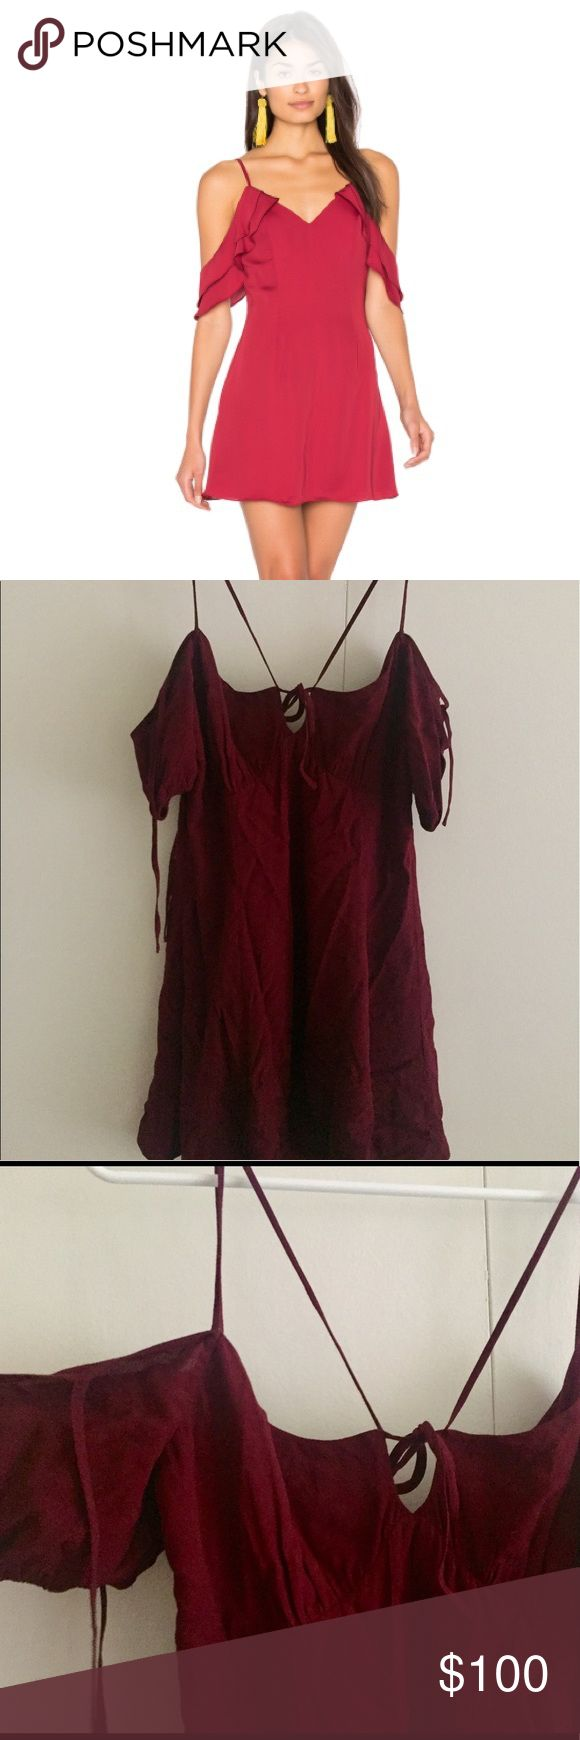 Majorelle Off-the-shoulder Mini Dress Majorelle Off-the-shoulder Mini Dress. Size Small. Bordeaux color. NEVER WORN! It's not the exact Majorelle dress in the cover photo but just want to show something similar from the same brand! They are technically both Bordeaux color but the cover photo makes it look a lot more red, it's more of a burgundy. Super cute ties on the shoulders and front of dress :) Majorelle Dresses Mini